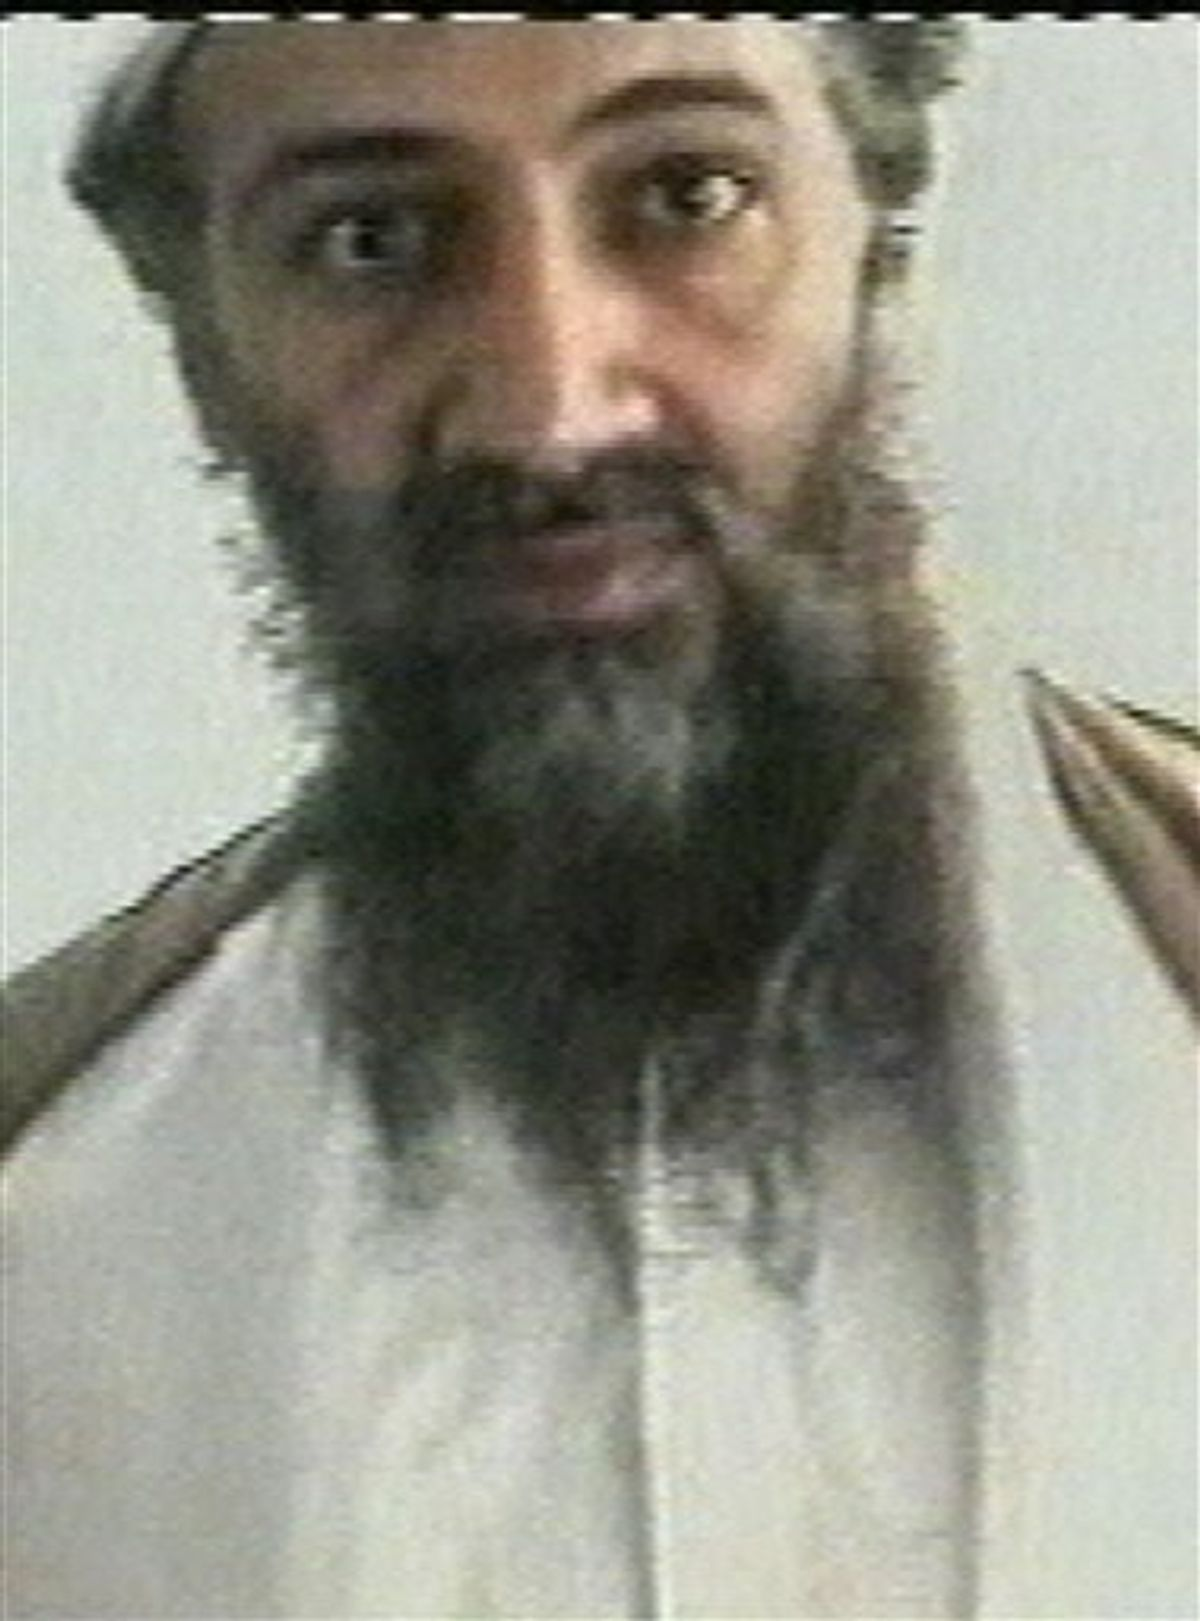 FILE - This undated image taken from video released by Al-Jazeera television on Oct. 5, 2001, shows Osama bin Laden at an undisclosed location. A cellphone of bin Laden's trusted courier recovered in the U.S. raid last month that killed both men in Pakistan contained contacts to a militant group that is a longtime asset of Pakistan's intelligence agency, The New York Times reported late Thursday. (AP Photo/Courtesy of Al-Jazeera via APTN, File) (AP)